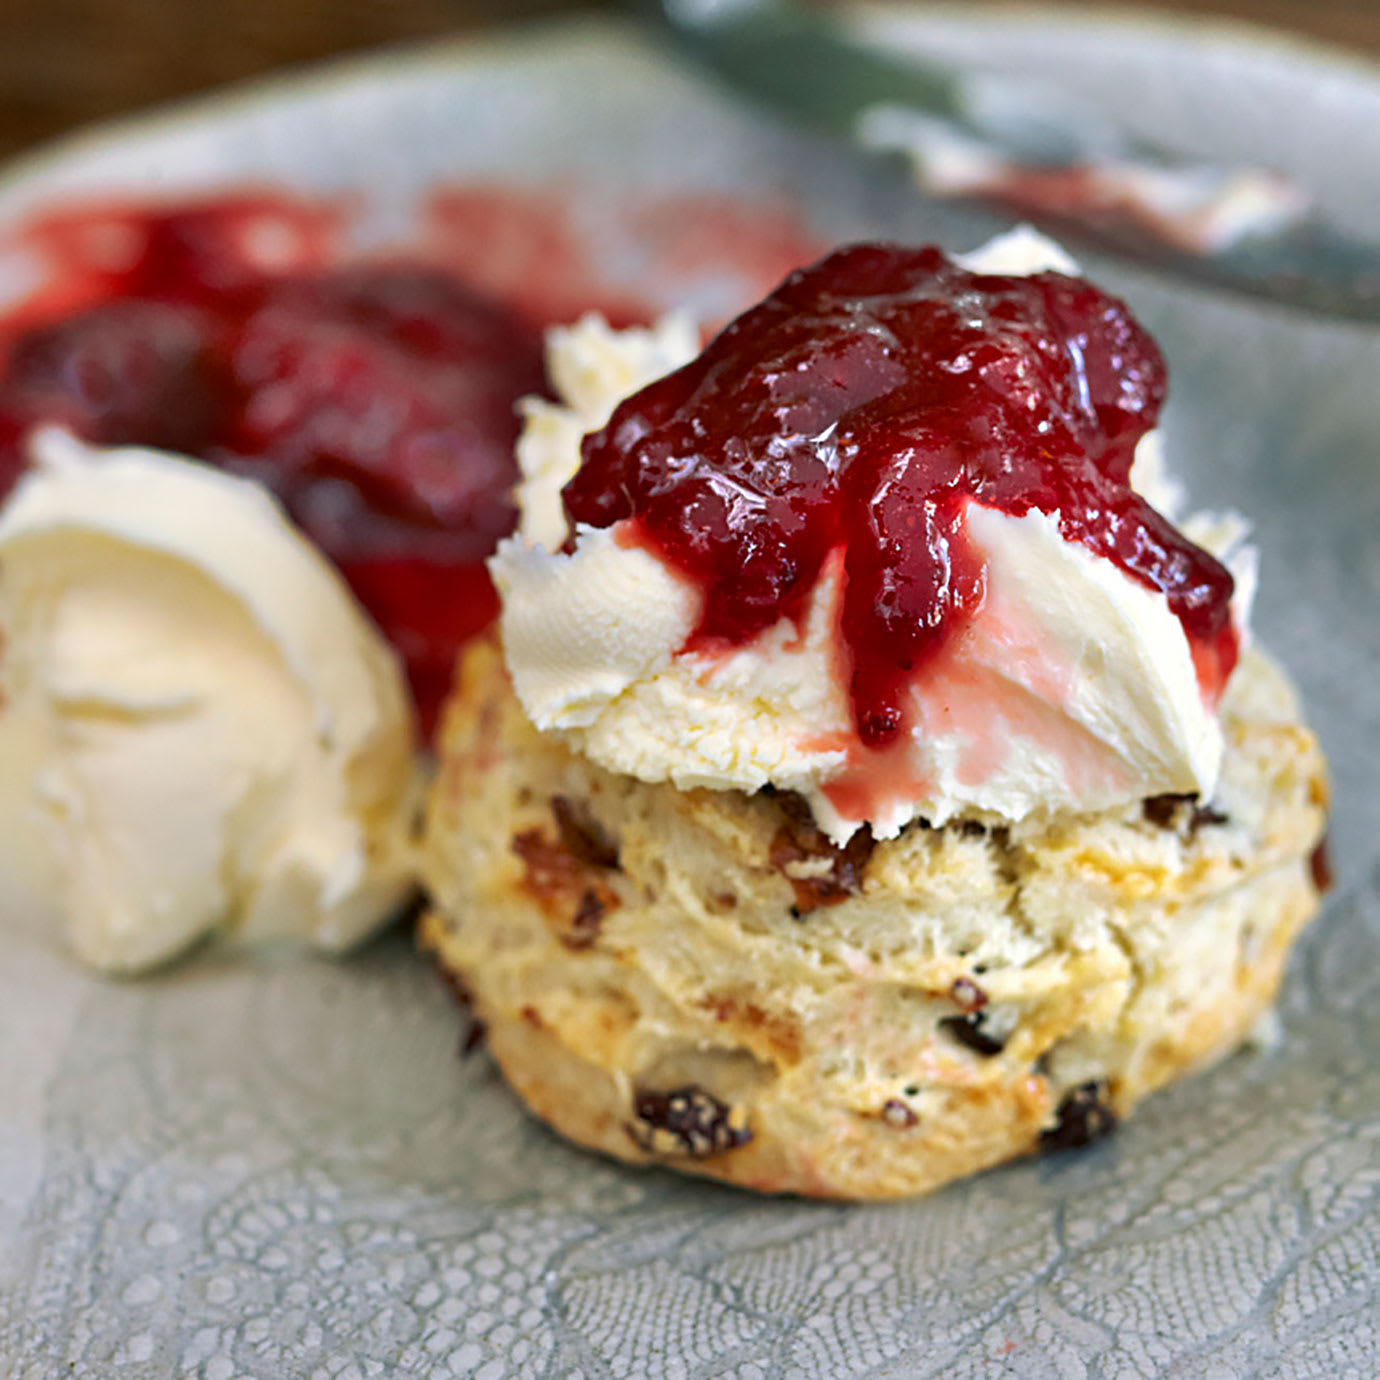 A scone with cream and jam on it.